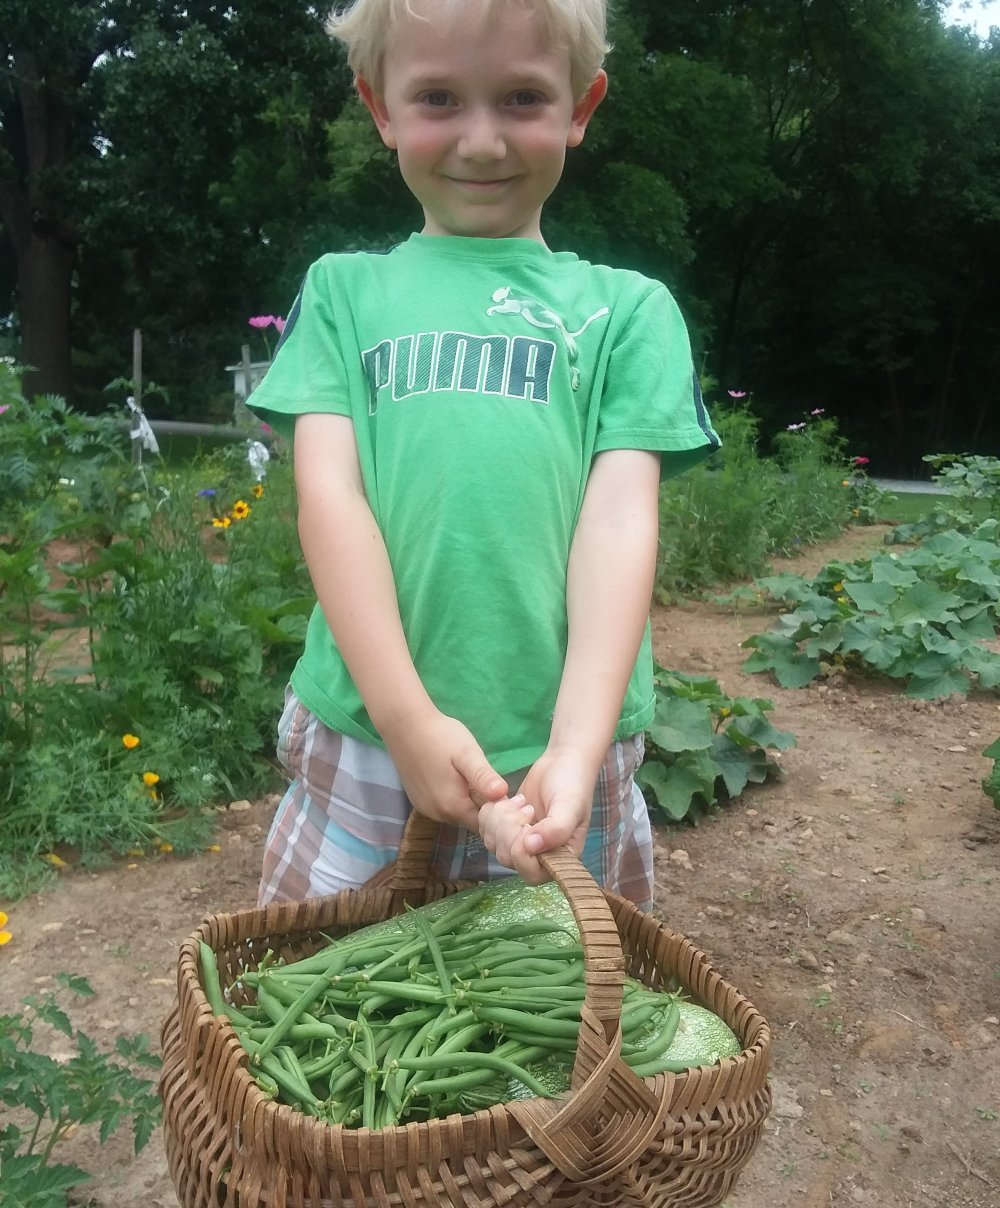 little boy in garden holding basket of green beans